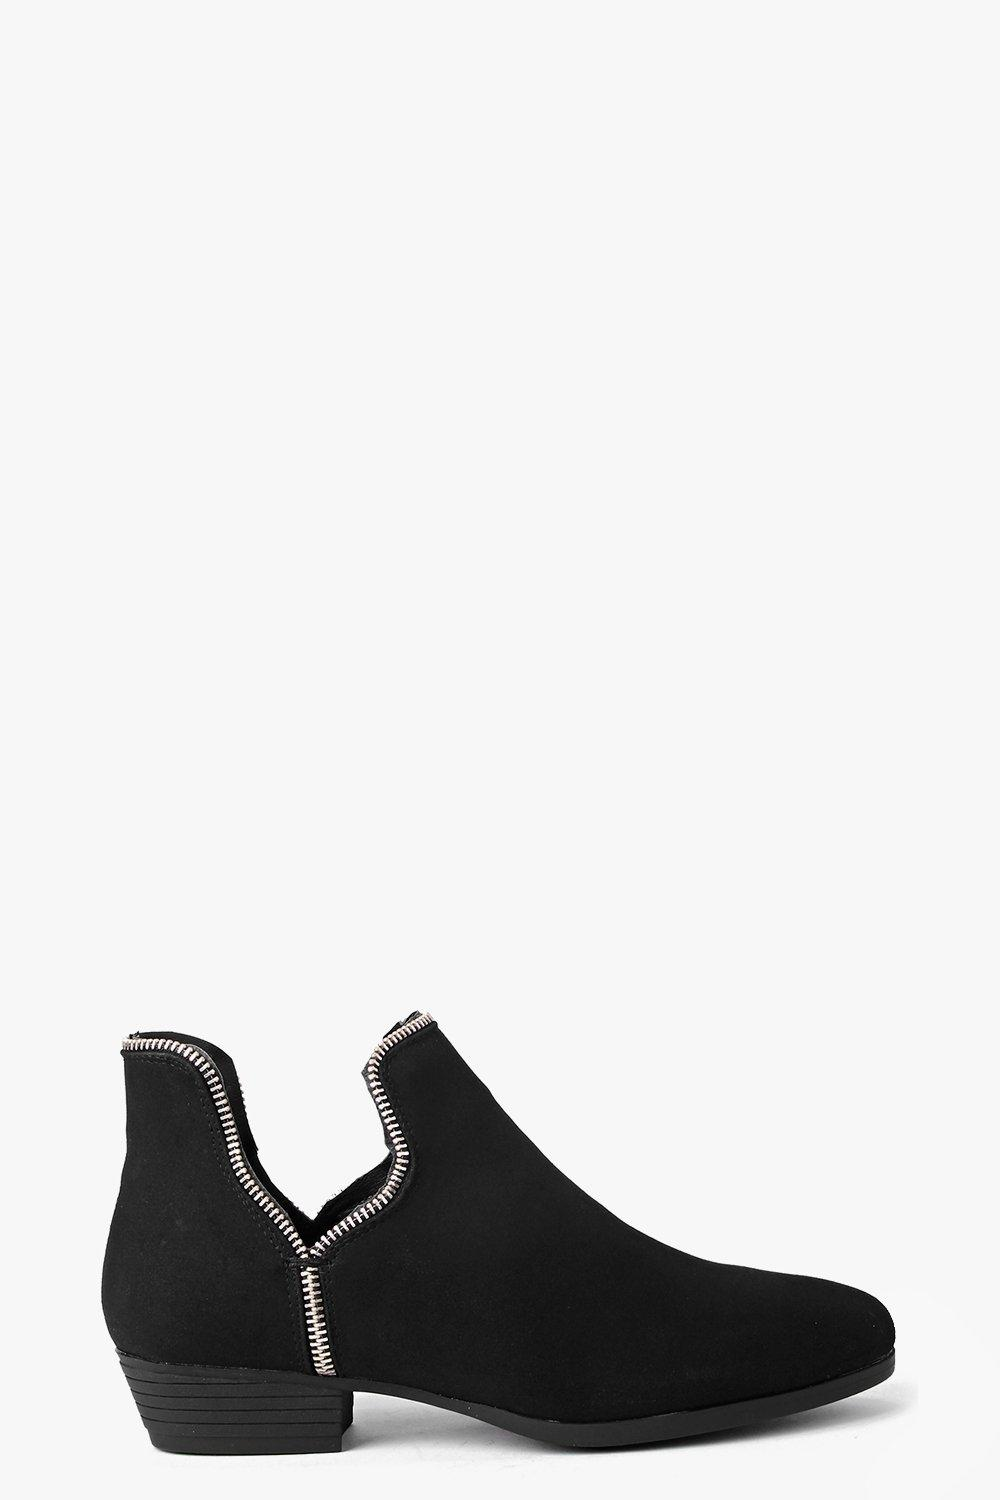 Tilly Zip Trim Cut Away Ankle Boot